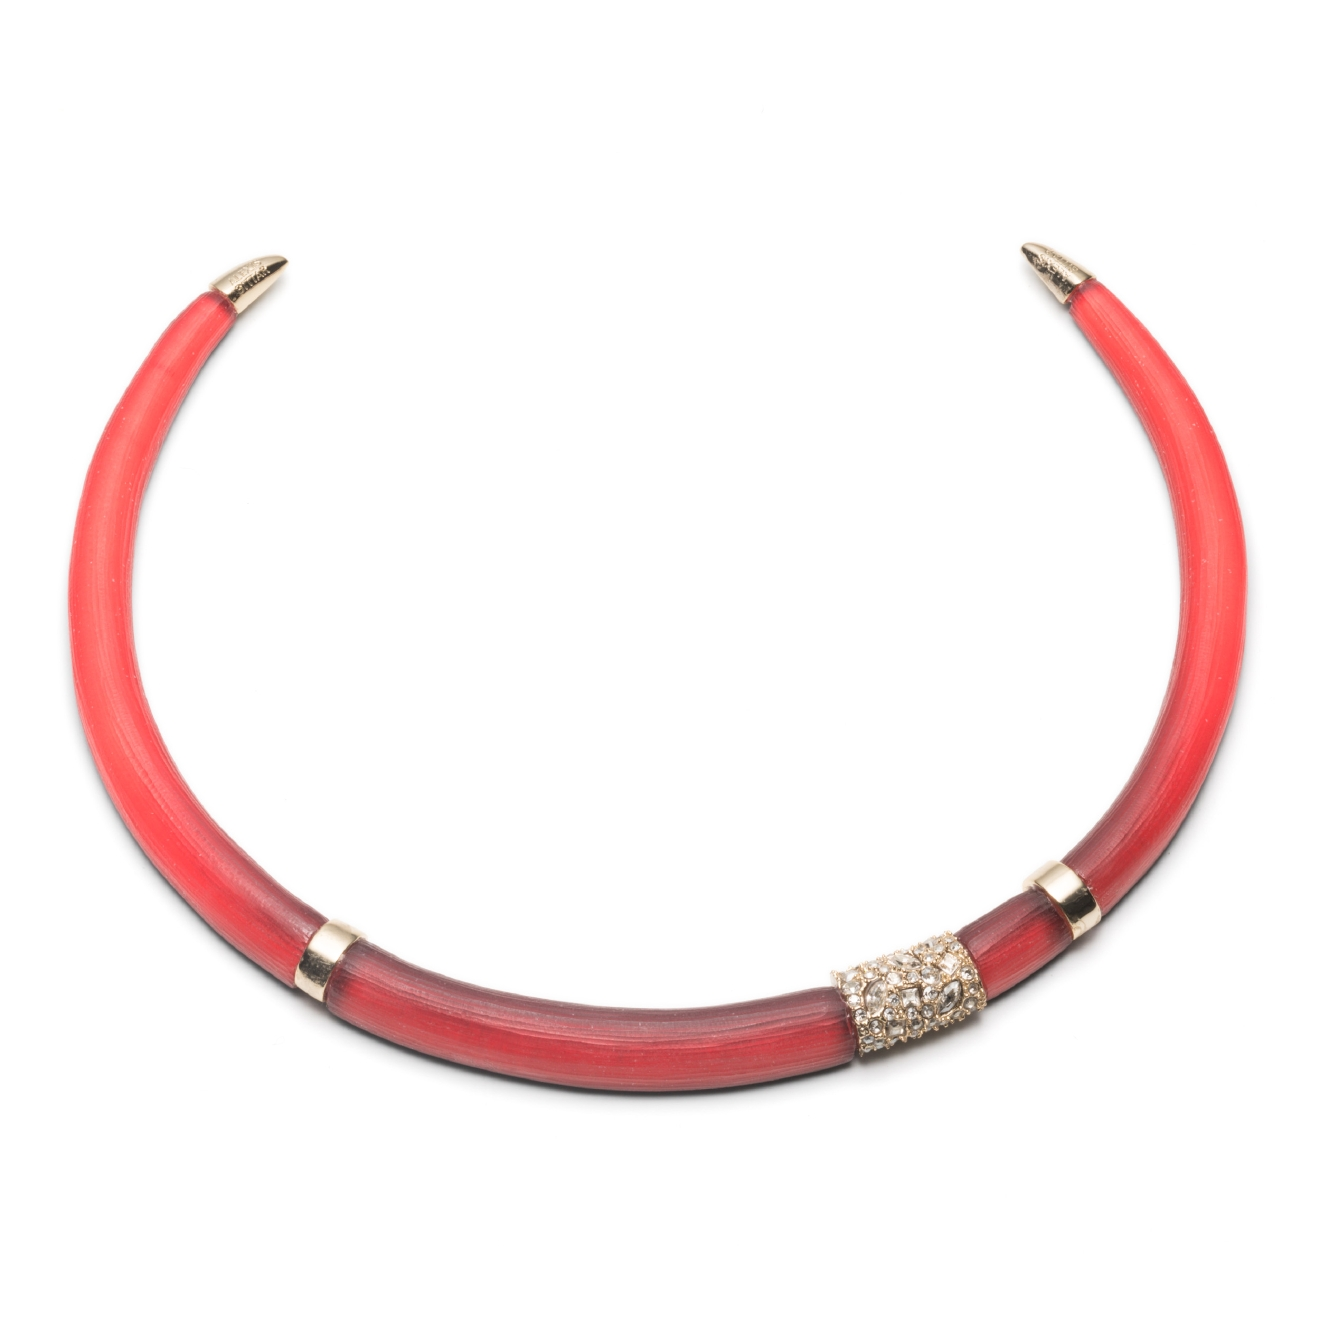 Collar necklaces are all the rage this season! Give your outfit a little egde. Alexis Bittar Colorblock Pave Station Collar, $275, alexisbittar.com (Image: Courtesy Alexis Bittar)